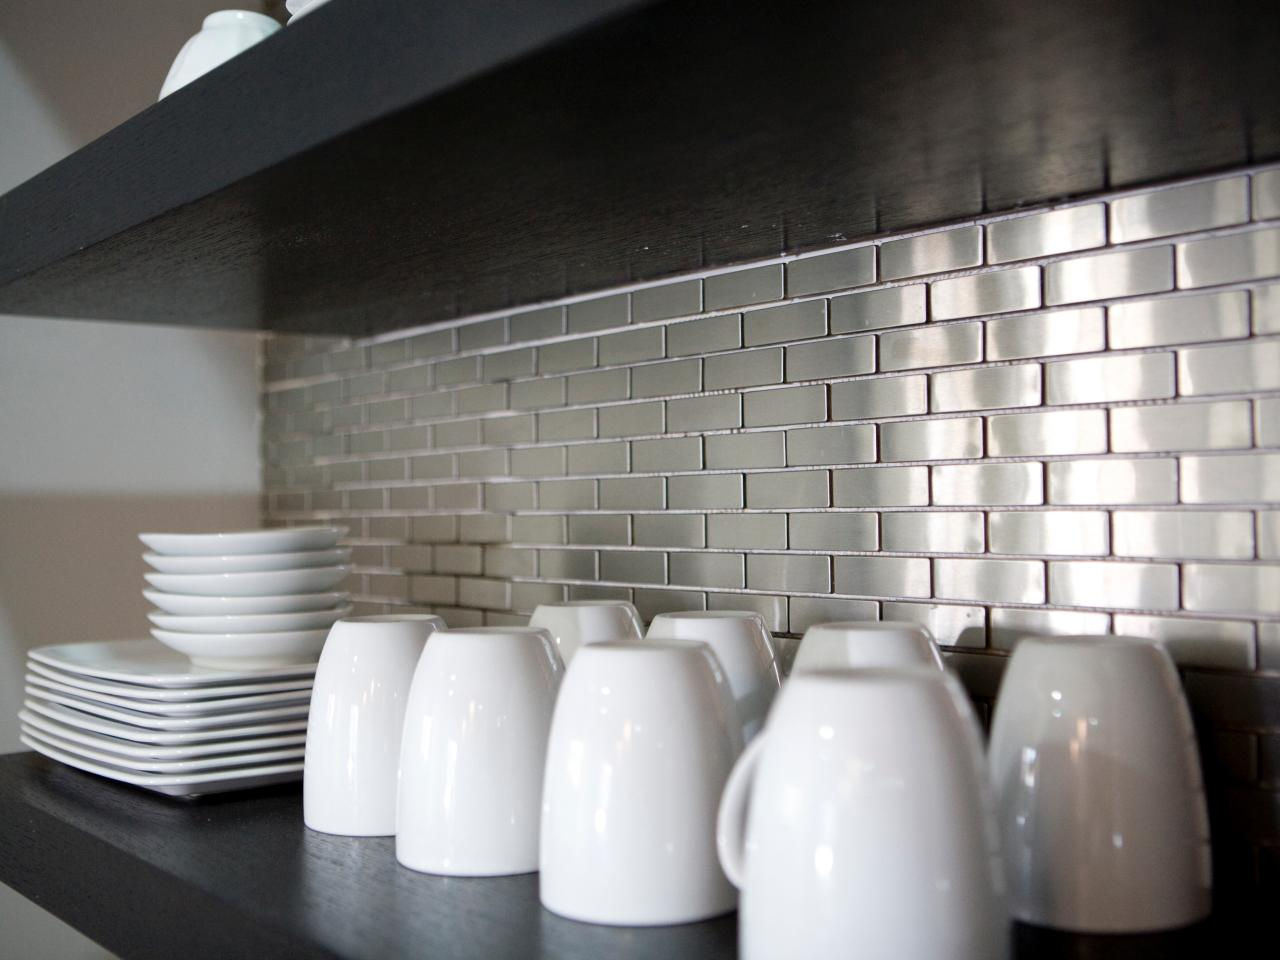 Metal tiles can be found in super stylish homes. Source: HGTV